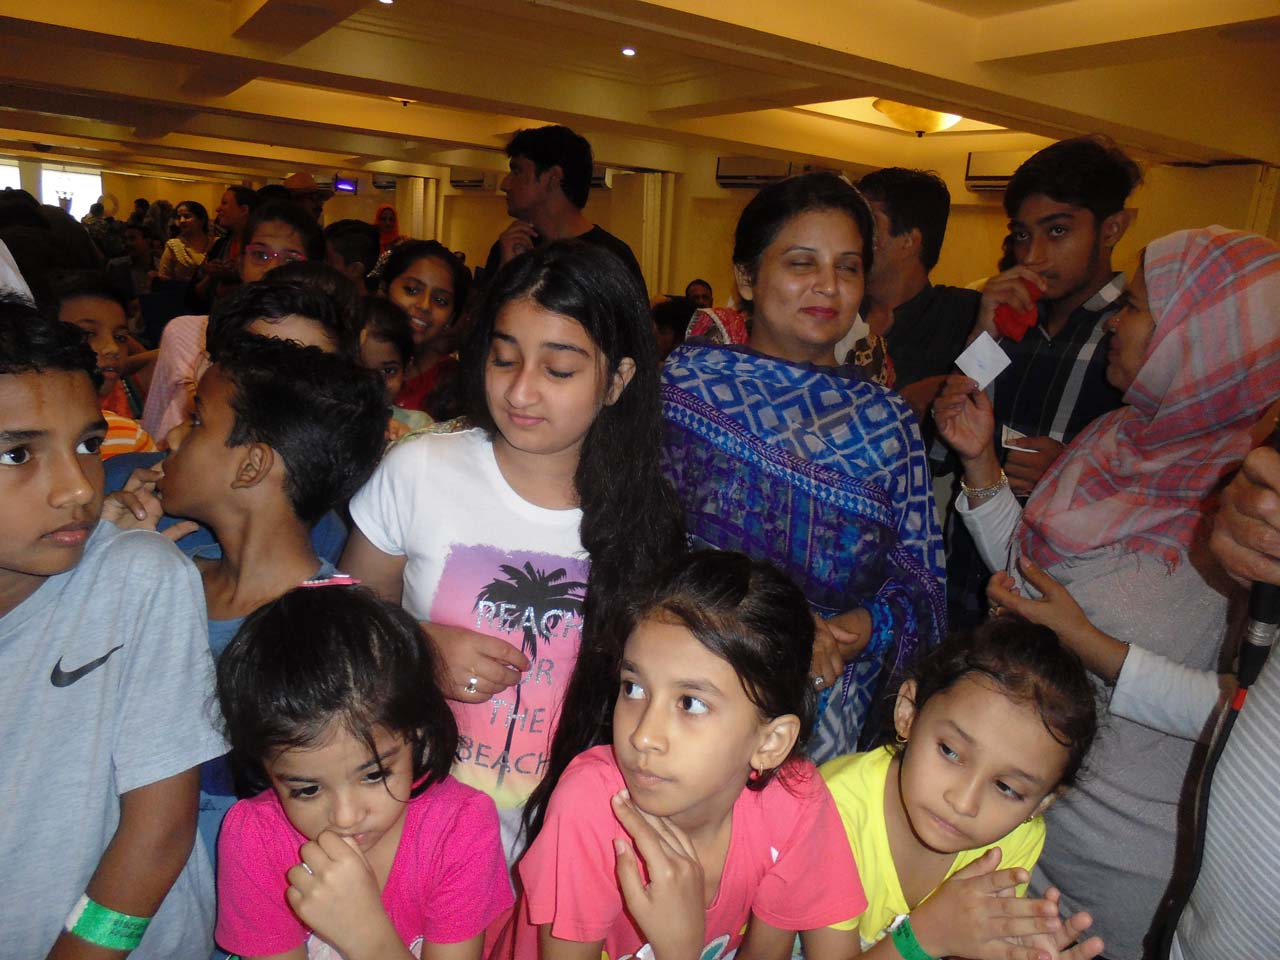 All the kids are waiting to receive their gifts from Kamal A. Farooqi